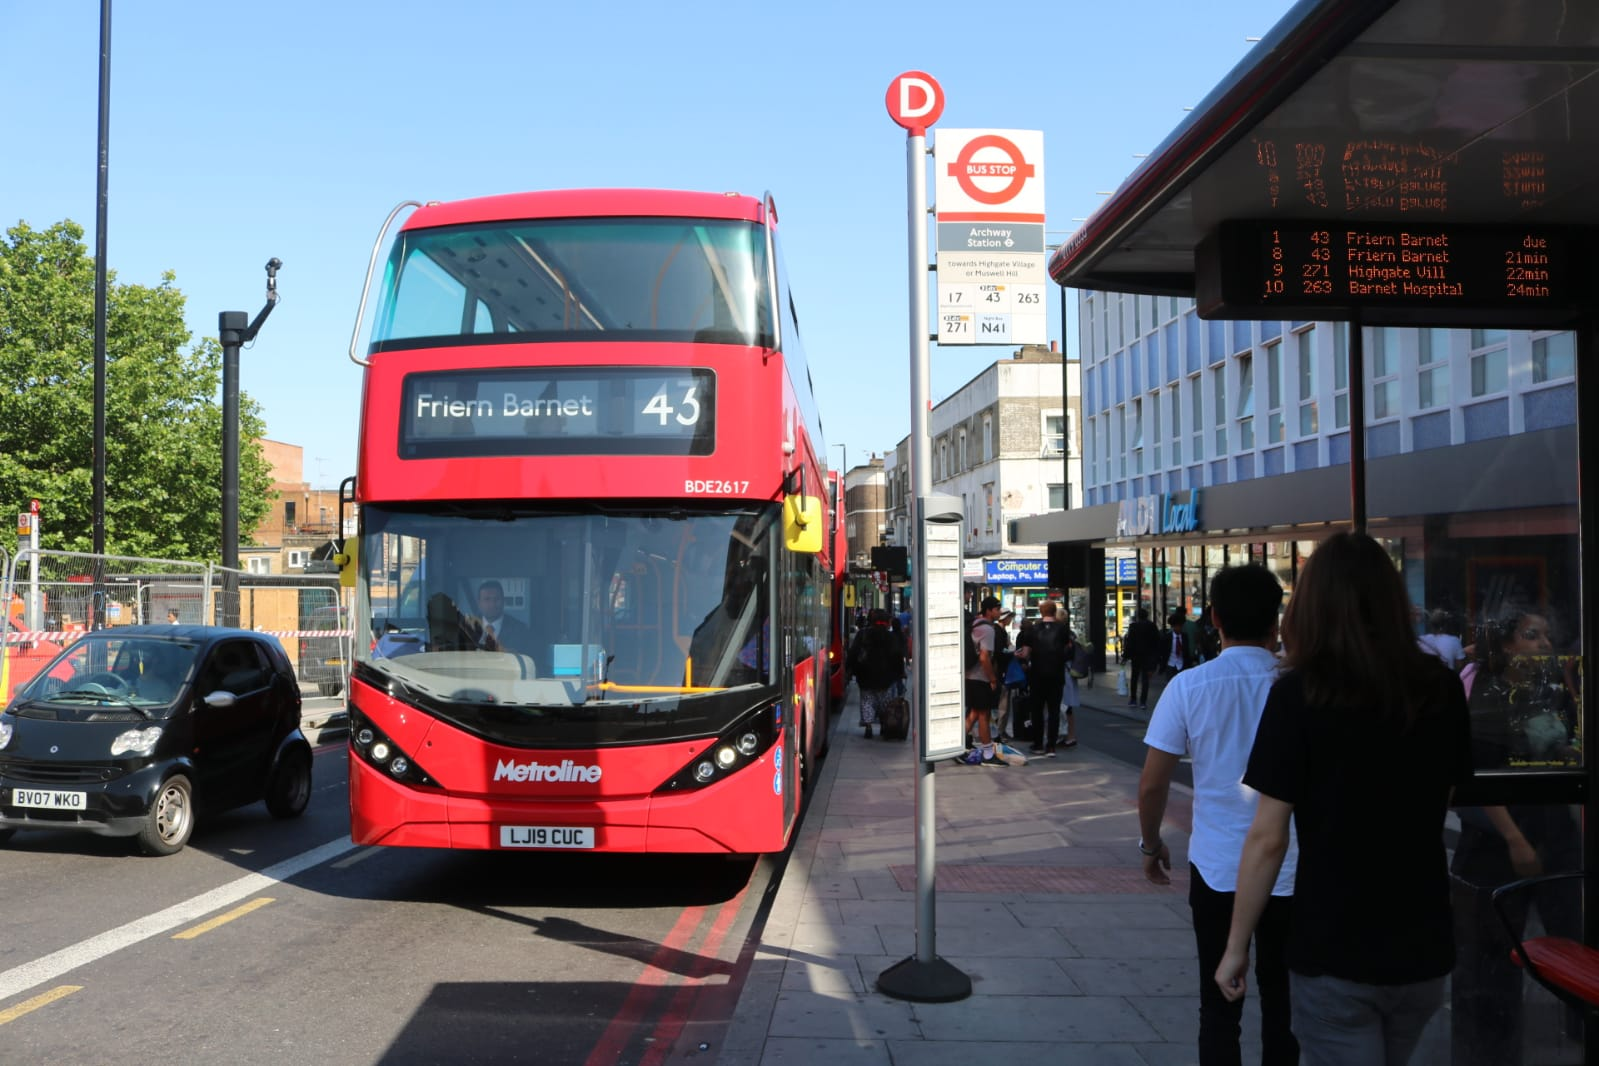 #AYearOfBuses 343: Friern Barnet – London Bridge